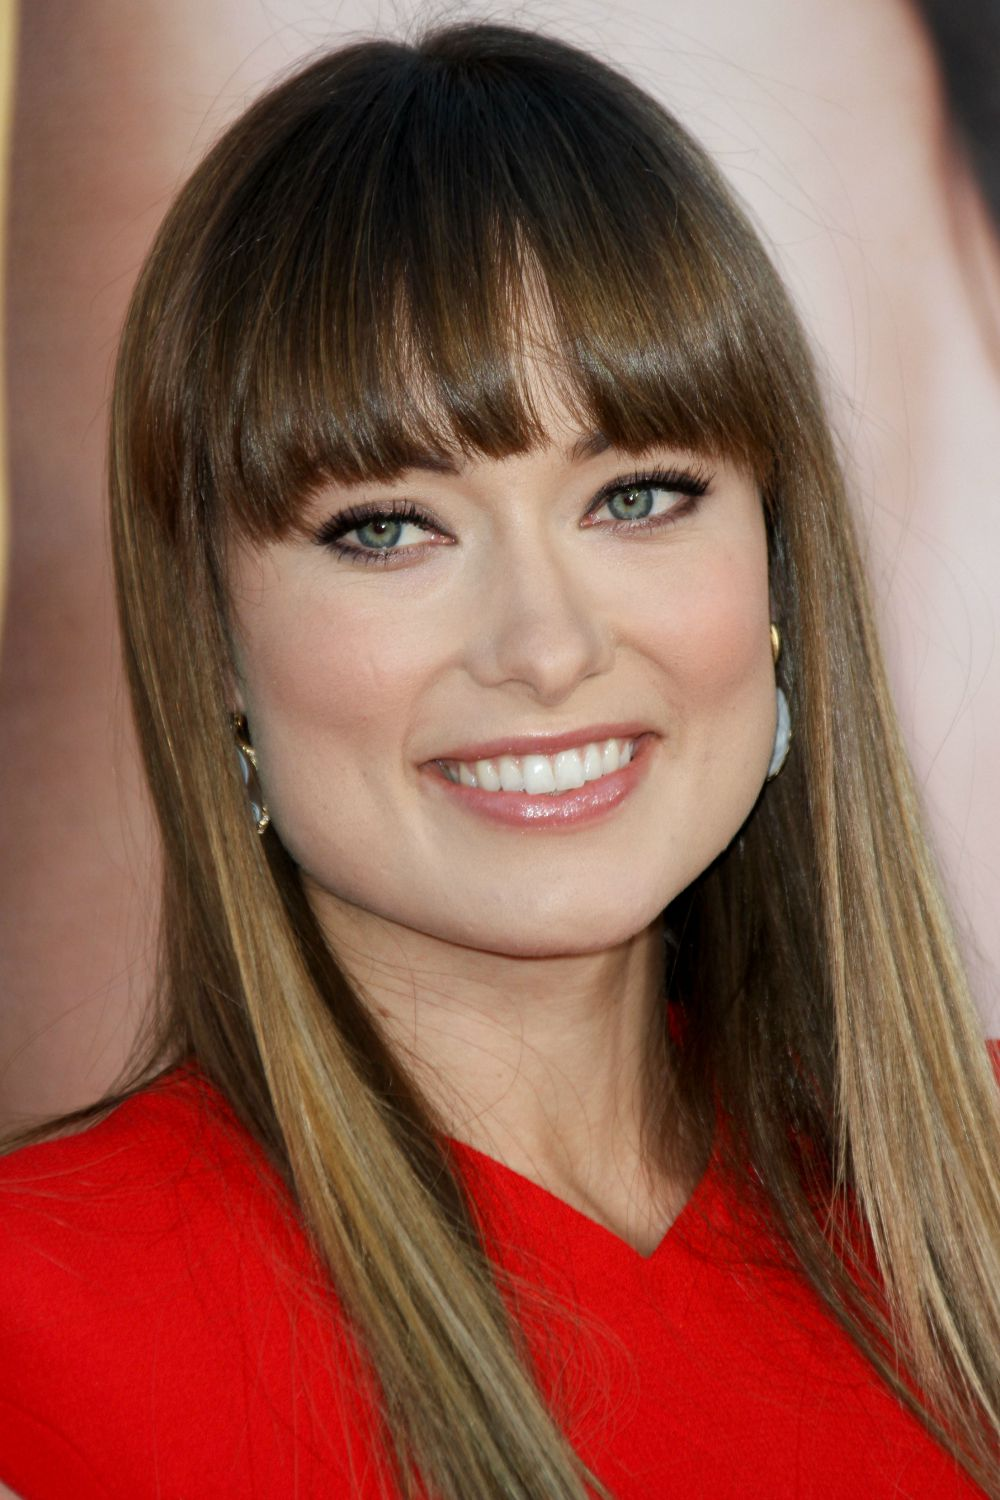 Change Up Your Look with These 15 Hairstyle Ideas with Bangs